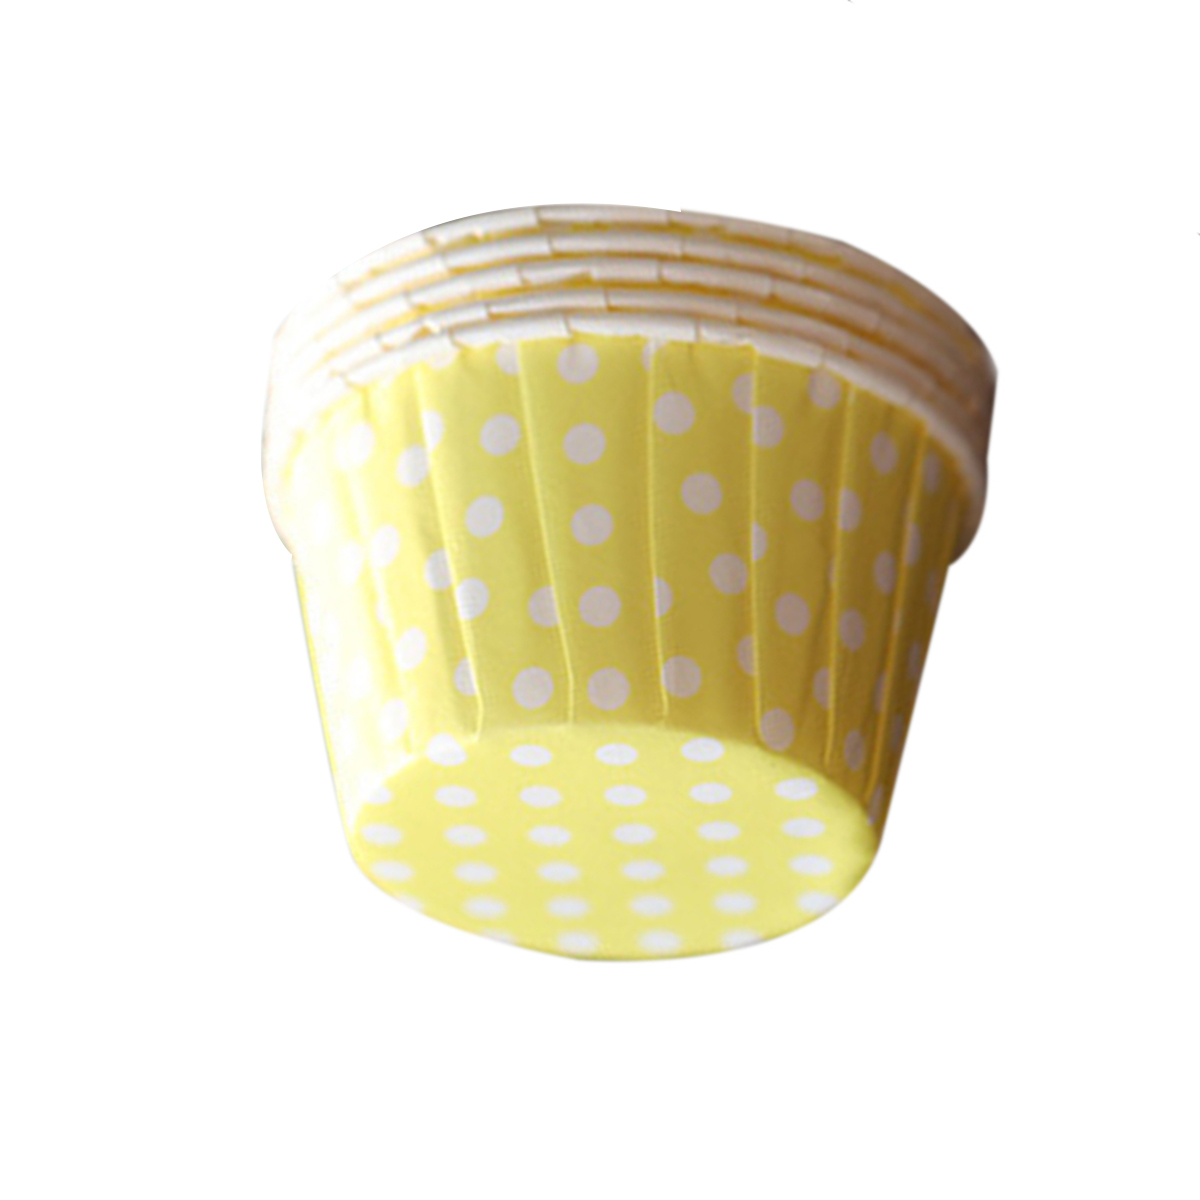 Cupcake Wrappers Muffin Liners Star Dot Strawberry Pattern Baking Cups Cupcake Cases for Baby Shower Birthday 68x68x39cm